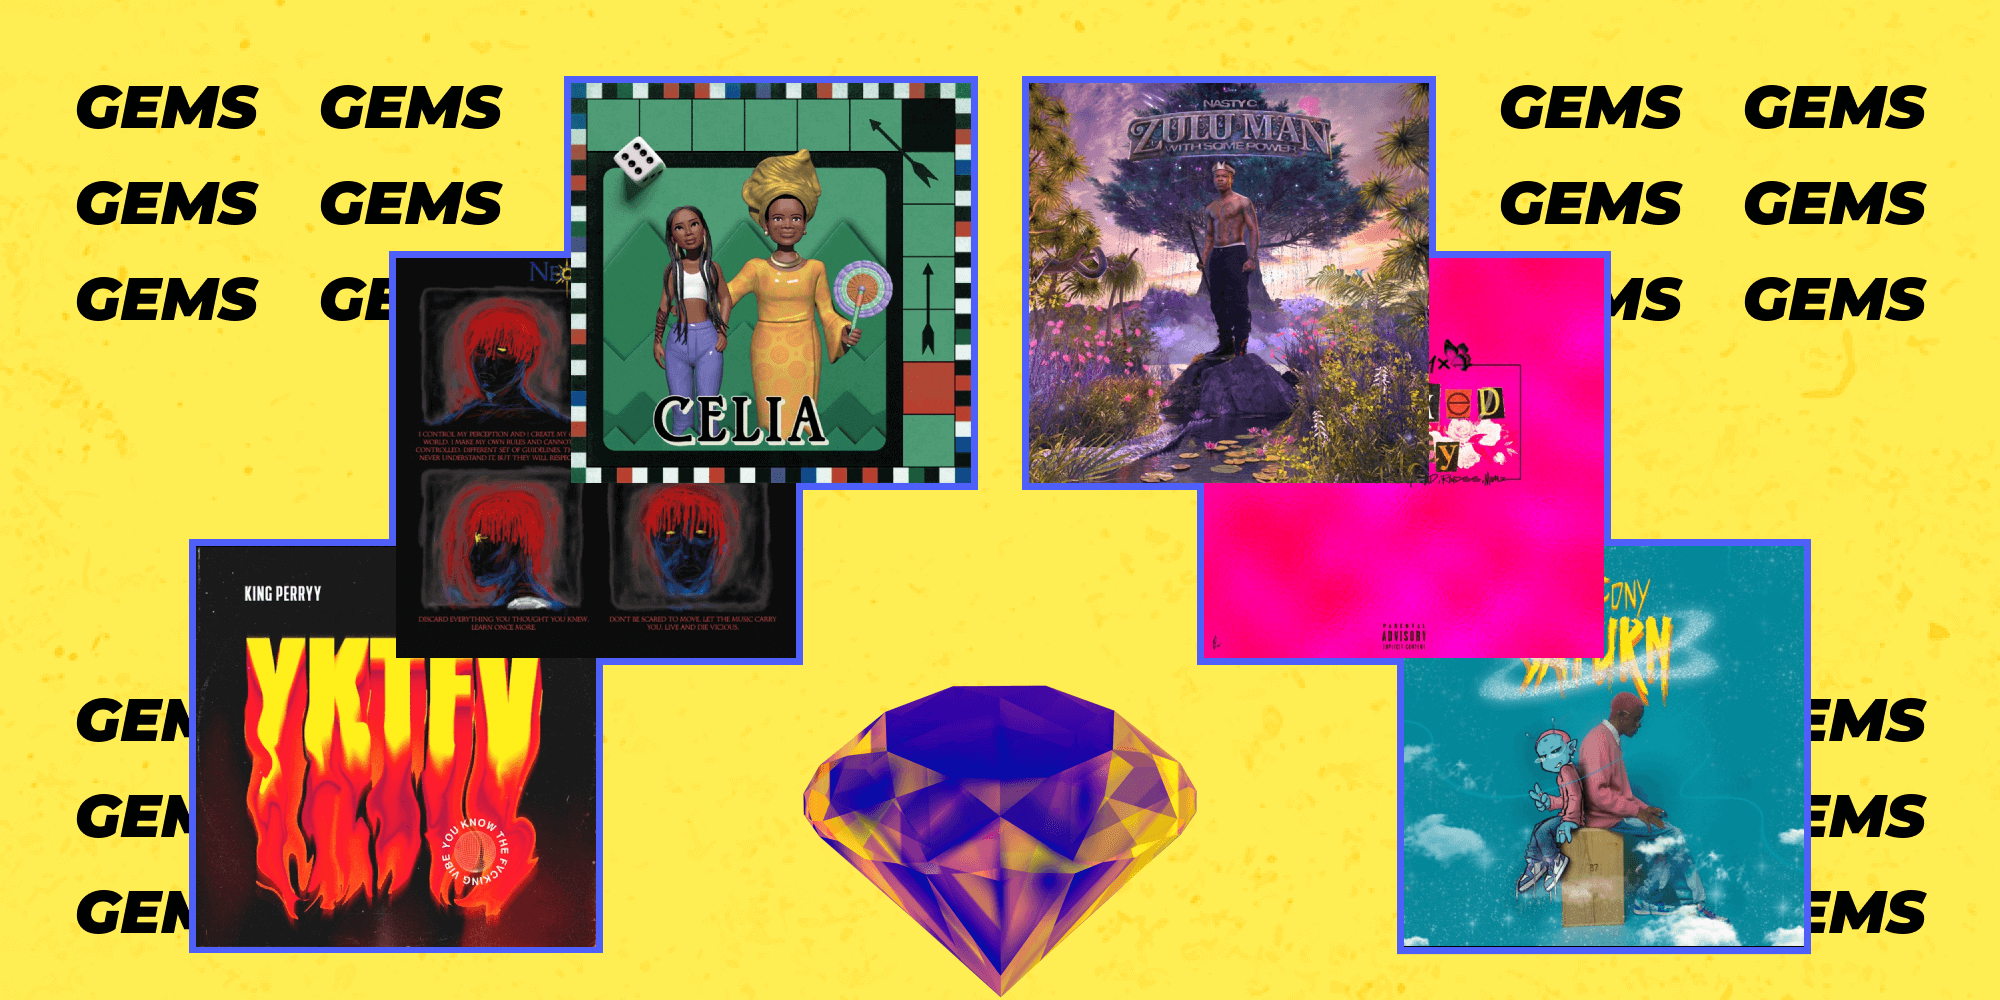 GEMS: A list of the best songs released this week